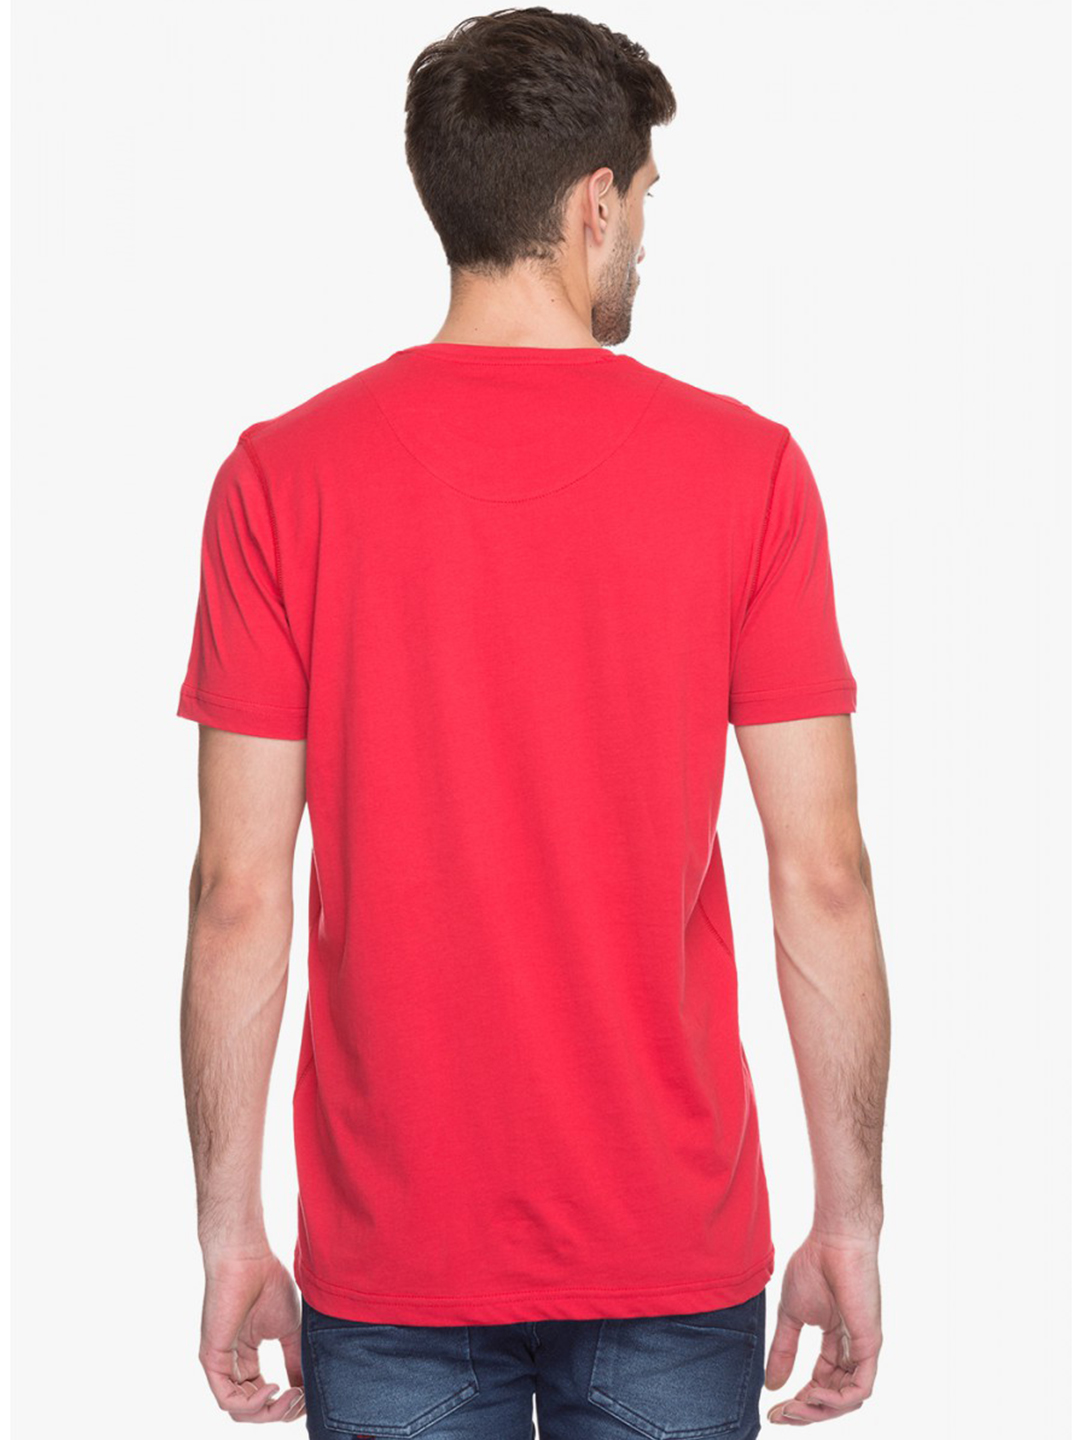 Status Quo Slim Fit Casual Wear Cotton Mens Red Printed T Shirt - G3-MTS4018 | G3fashion.com